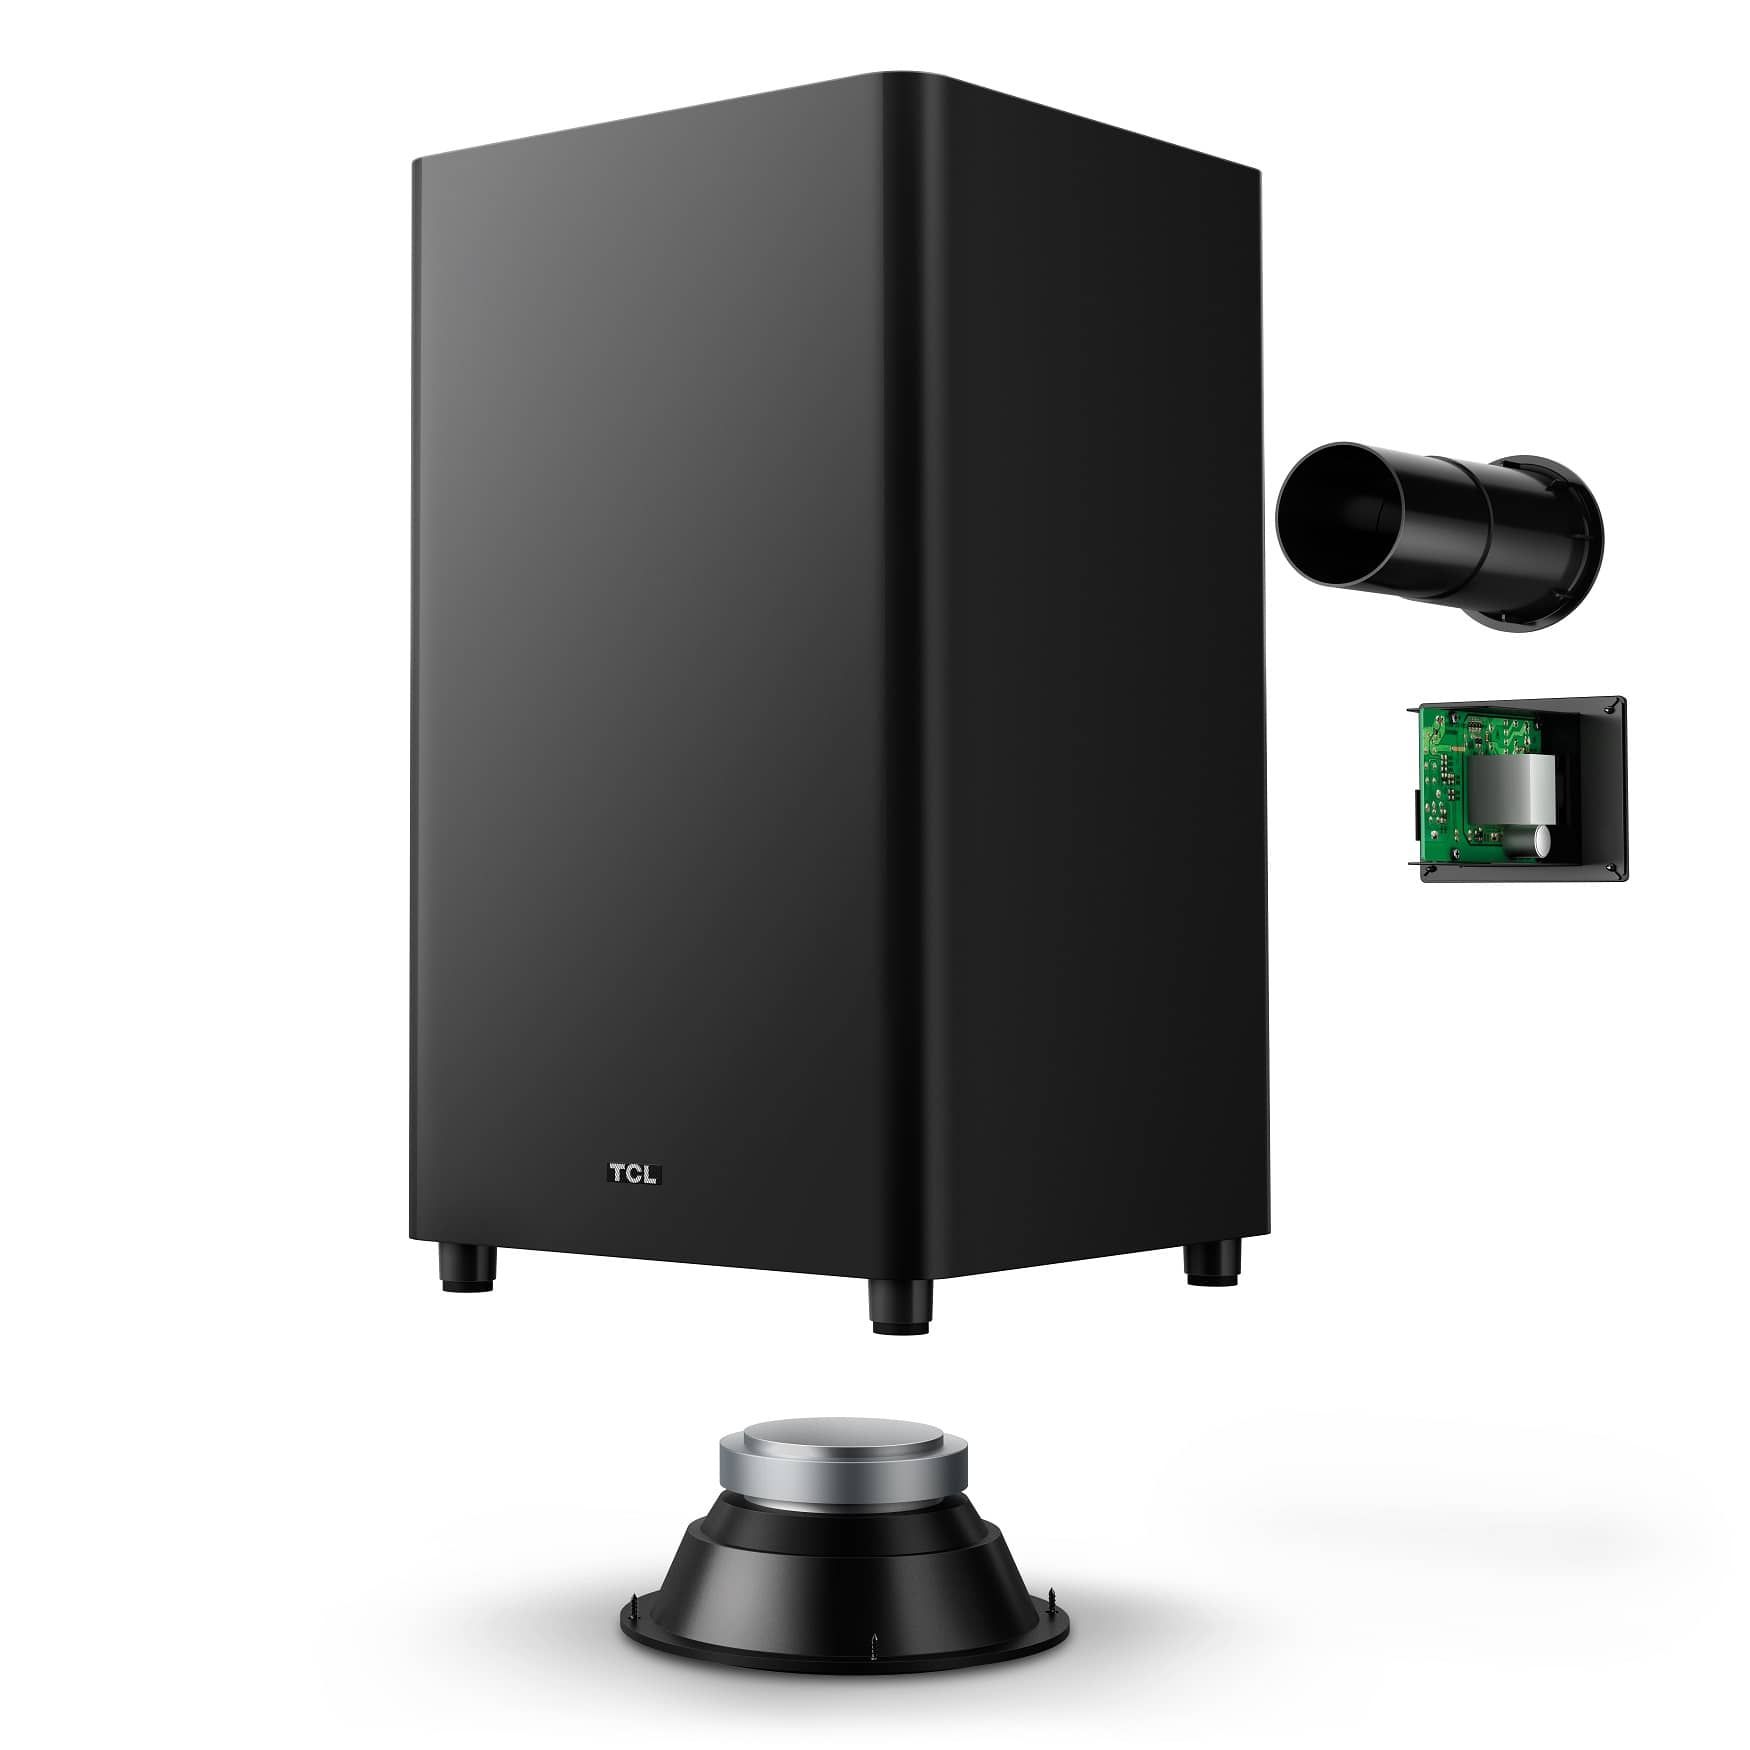 TCL Raydanz subwoofer exploded view